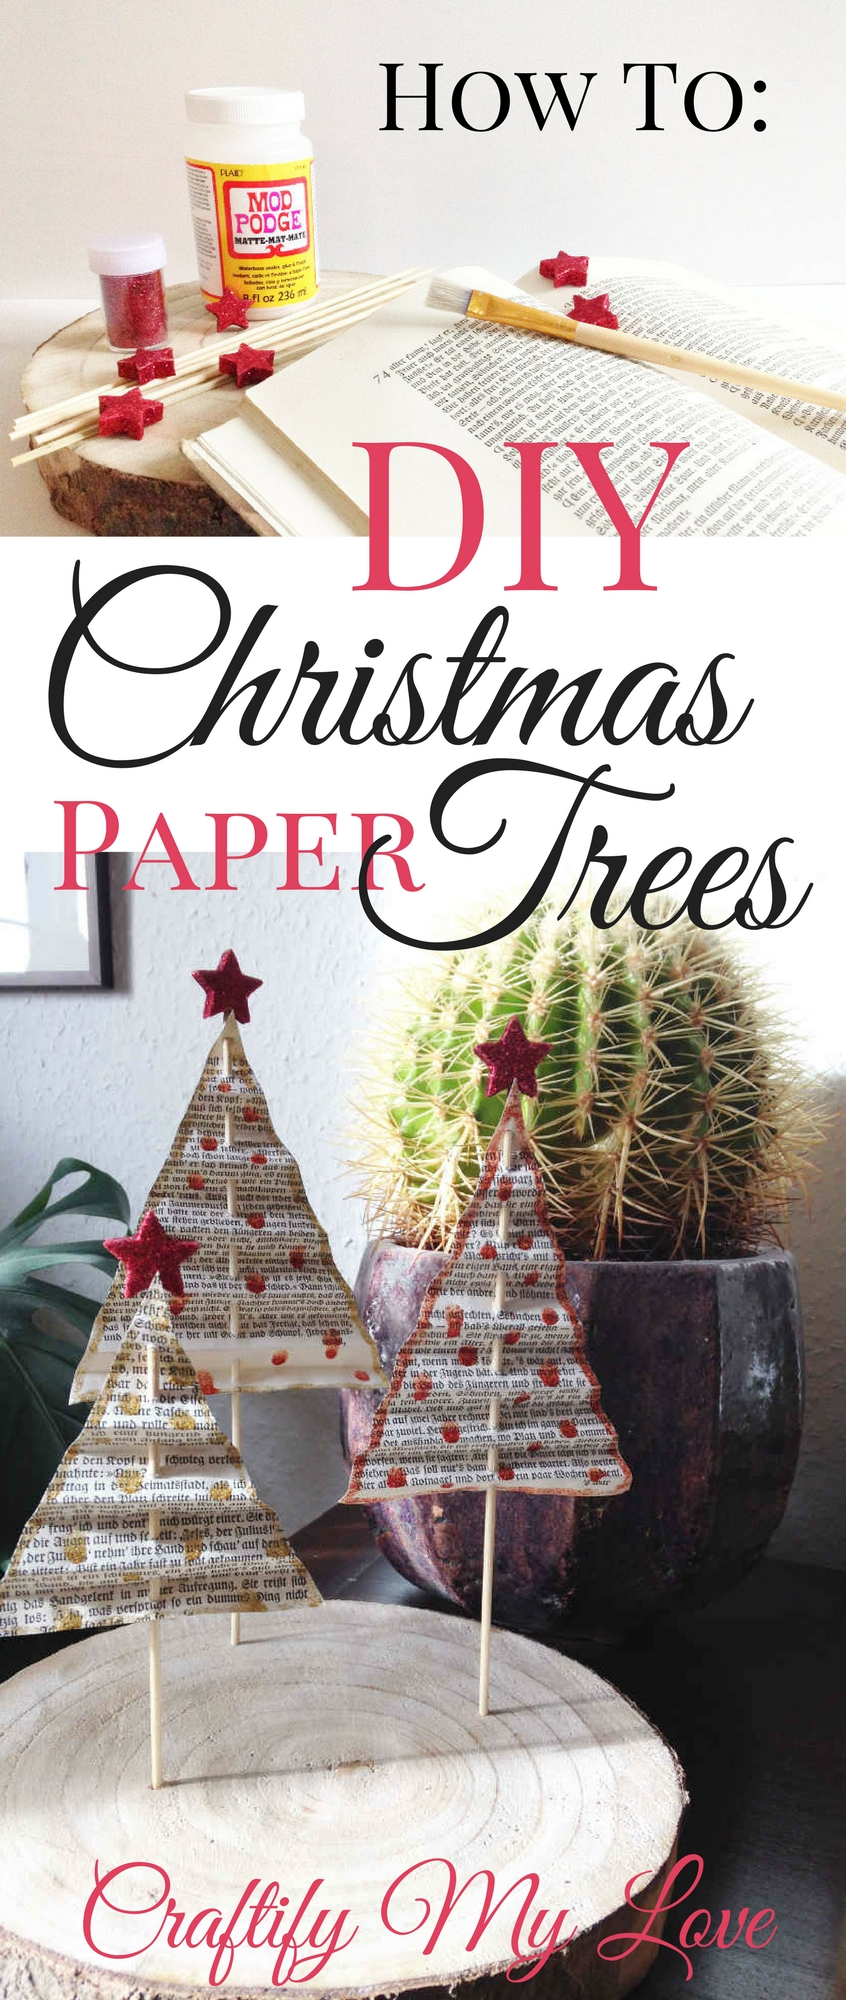 Video Tutorial for a DIY Paper Christmas Trees Projekt from old books. Click for simple instructions. | #diychristmasdecoration #papercrafts #upcycledchristmastree #christmasdecor #upcycling #upcycledvintagebooks